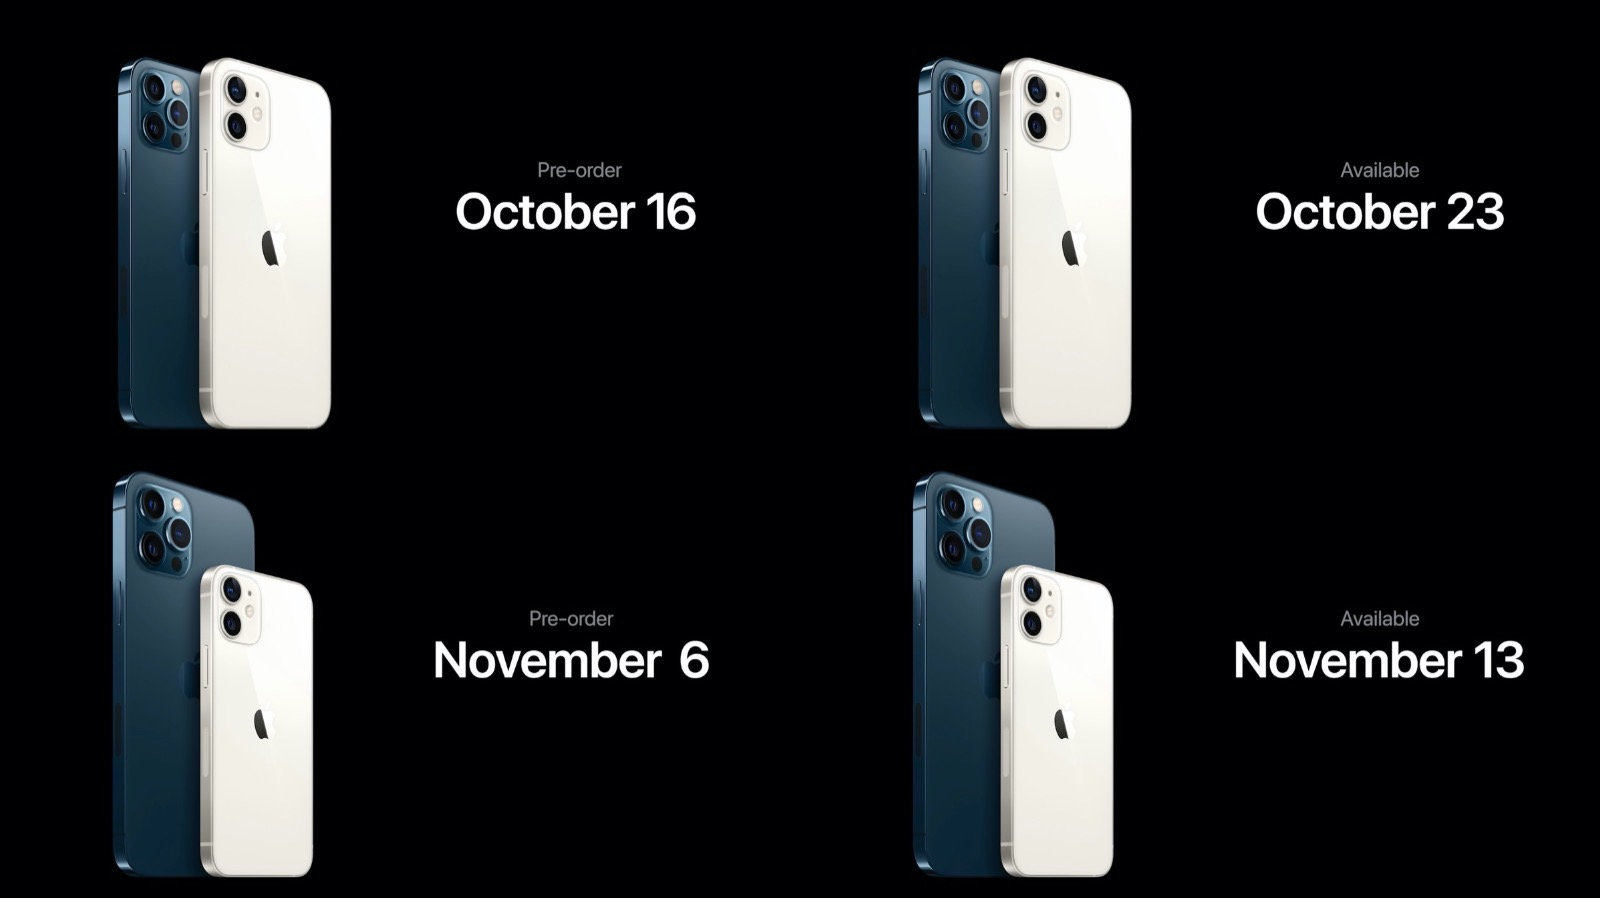 Preorders and sale dates for iphone12